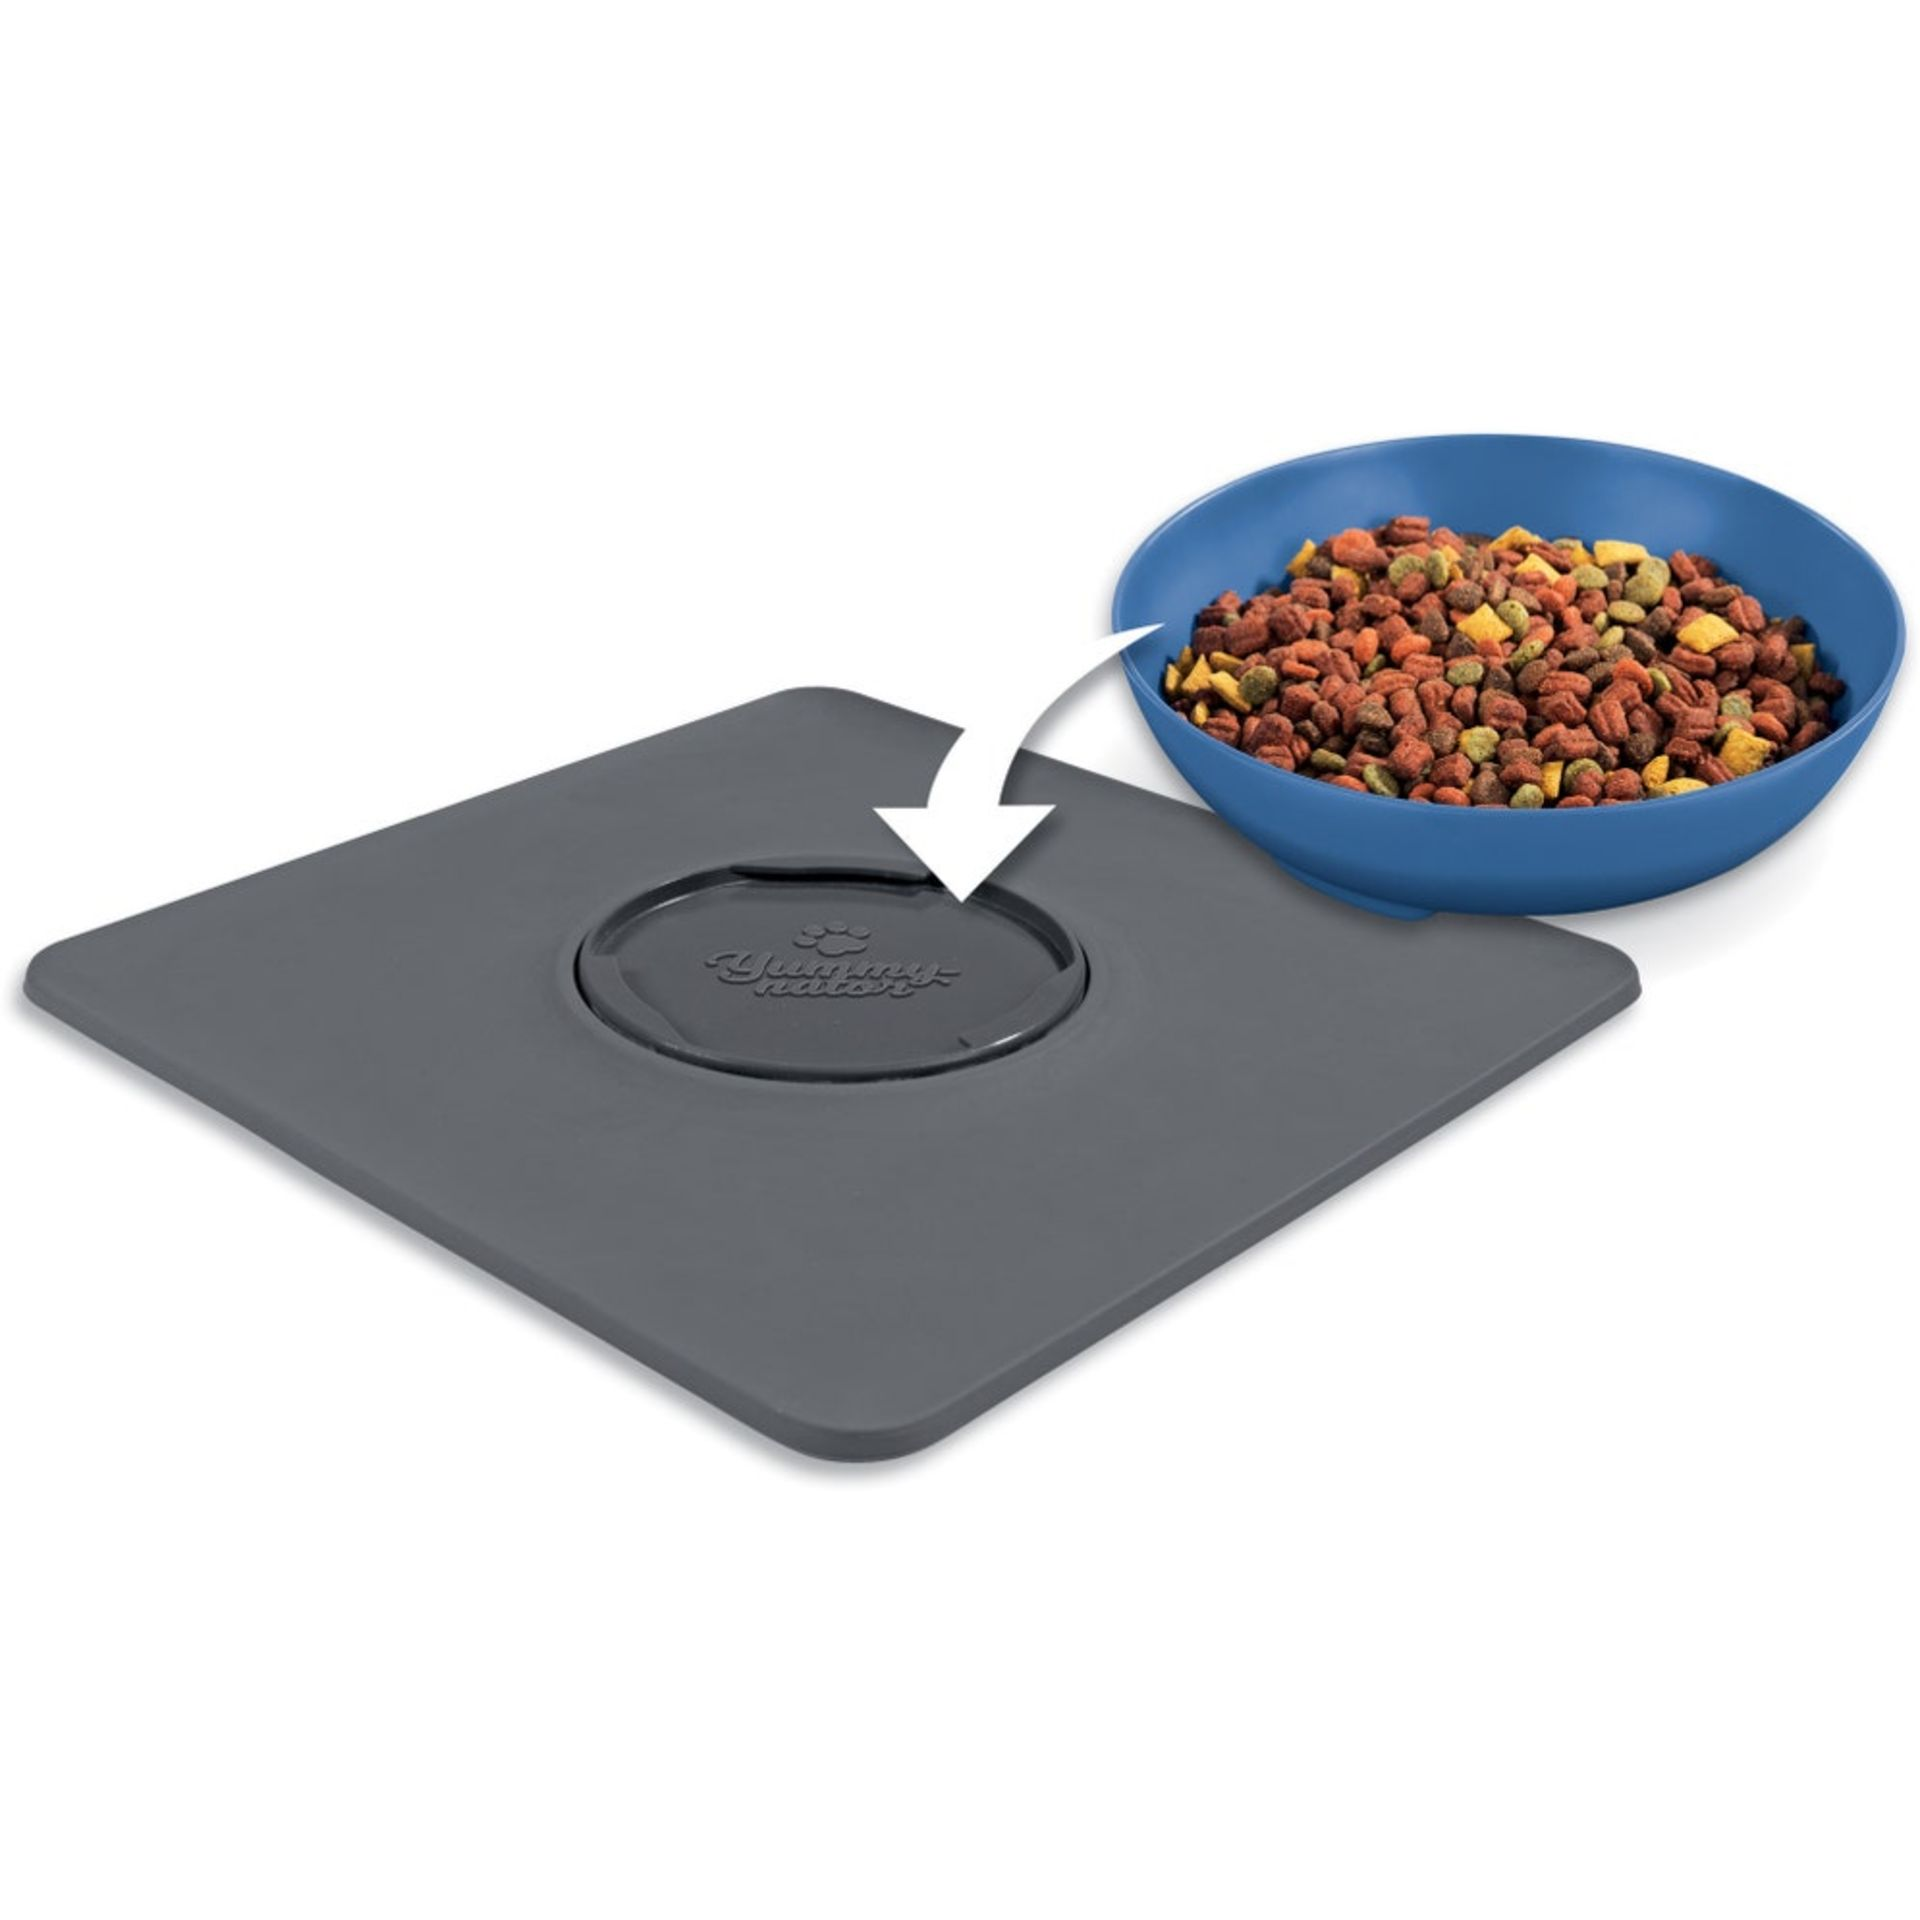 Brand New Jml Twisty Dish Rrp 18.99 - Image 2 of 2